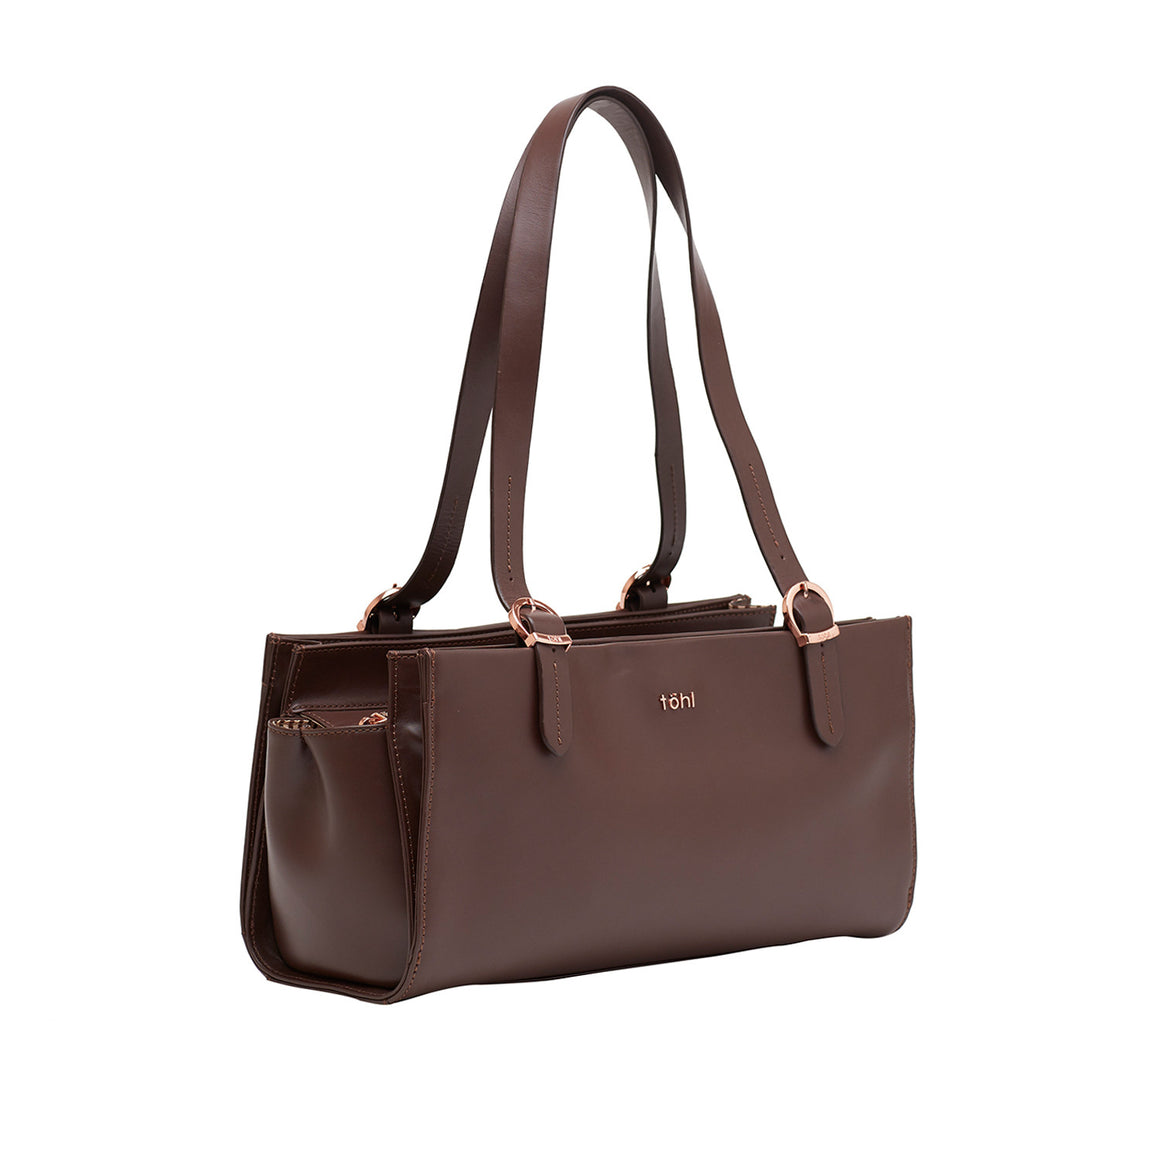 SB 0006 - TOHL CORTLAND WOMEN'S SHOULDER BAGUETTE - CHOCO